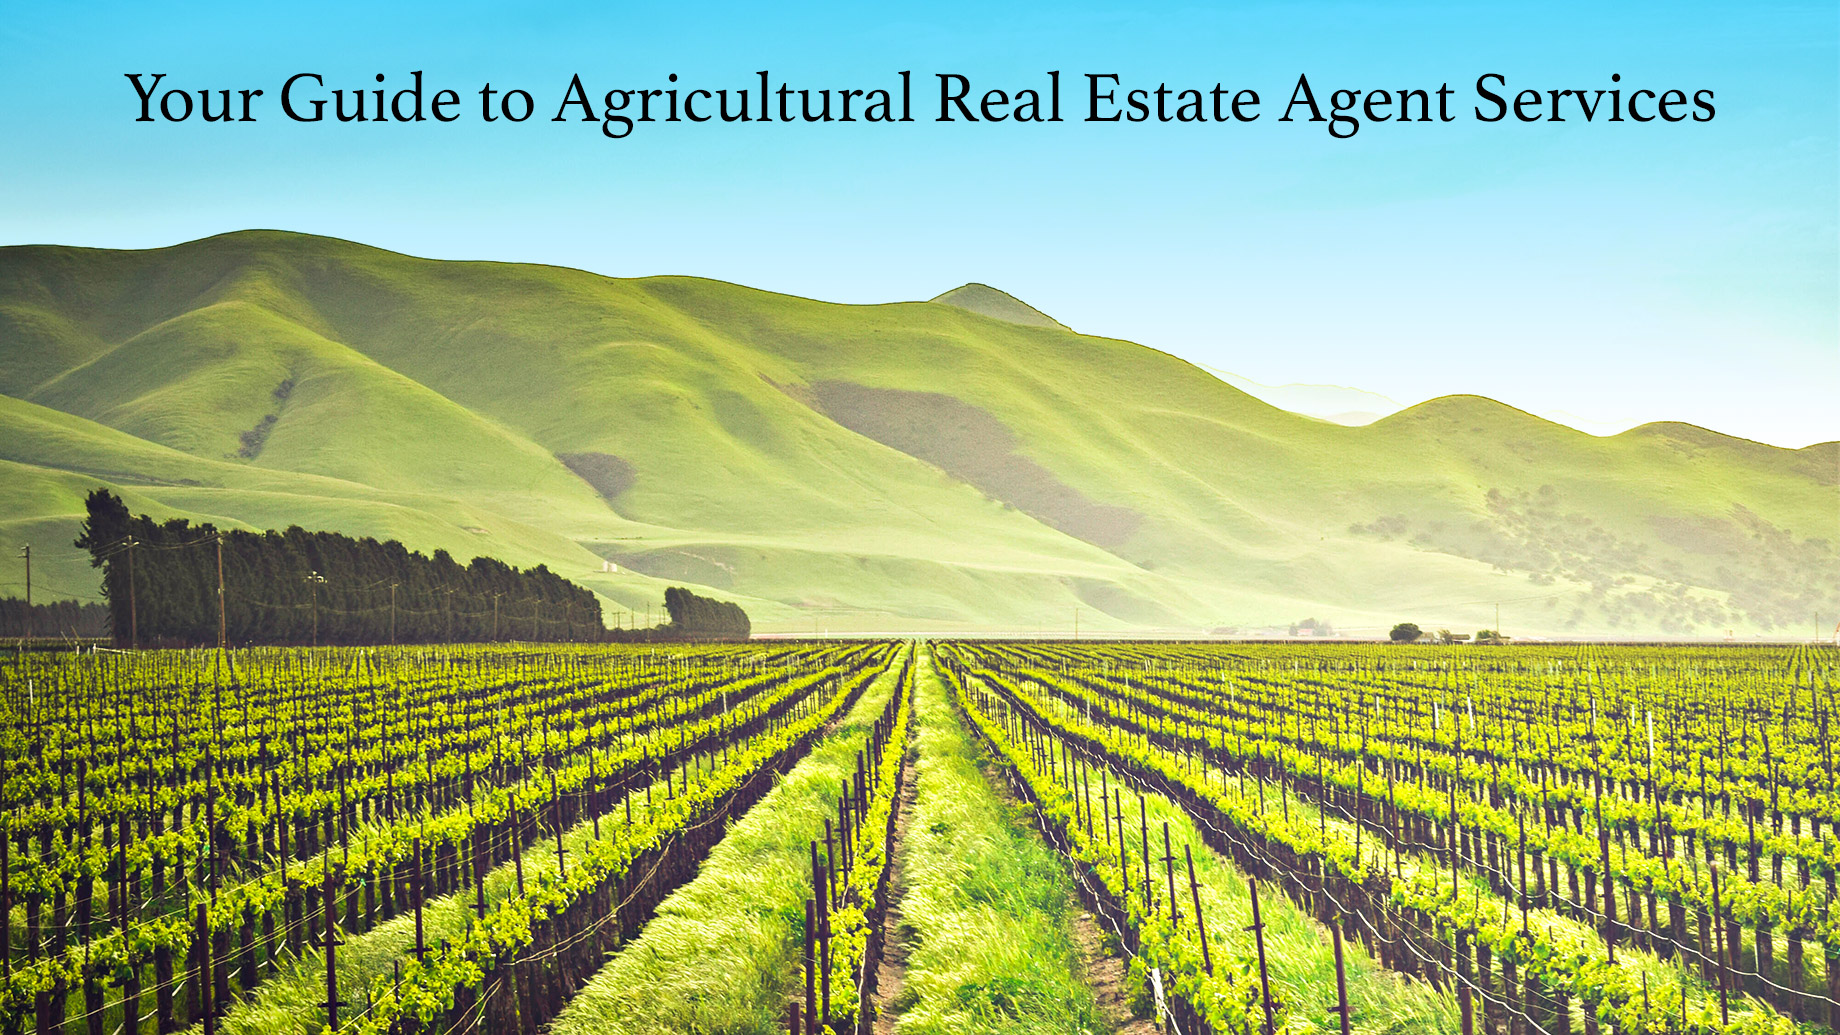 Your Guide to Agricultural Real Estate Agent Services